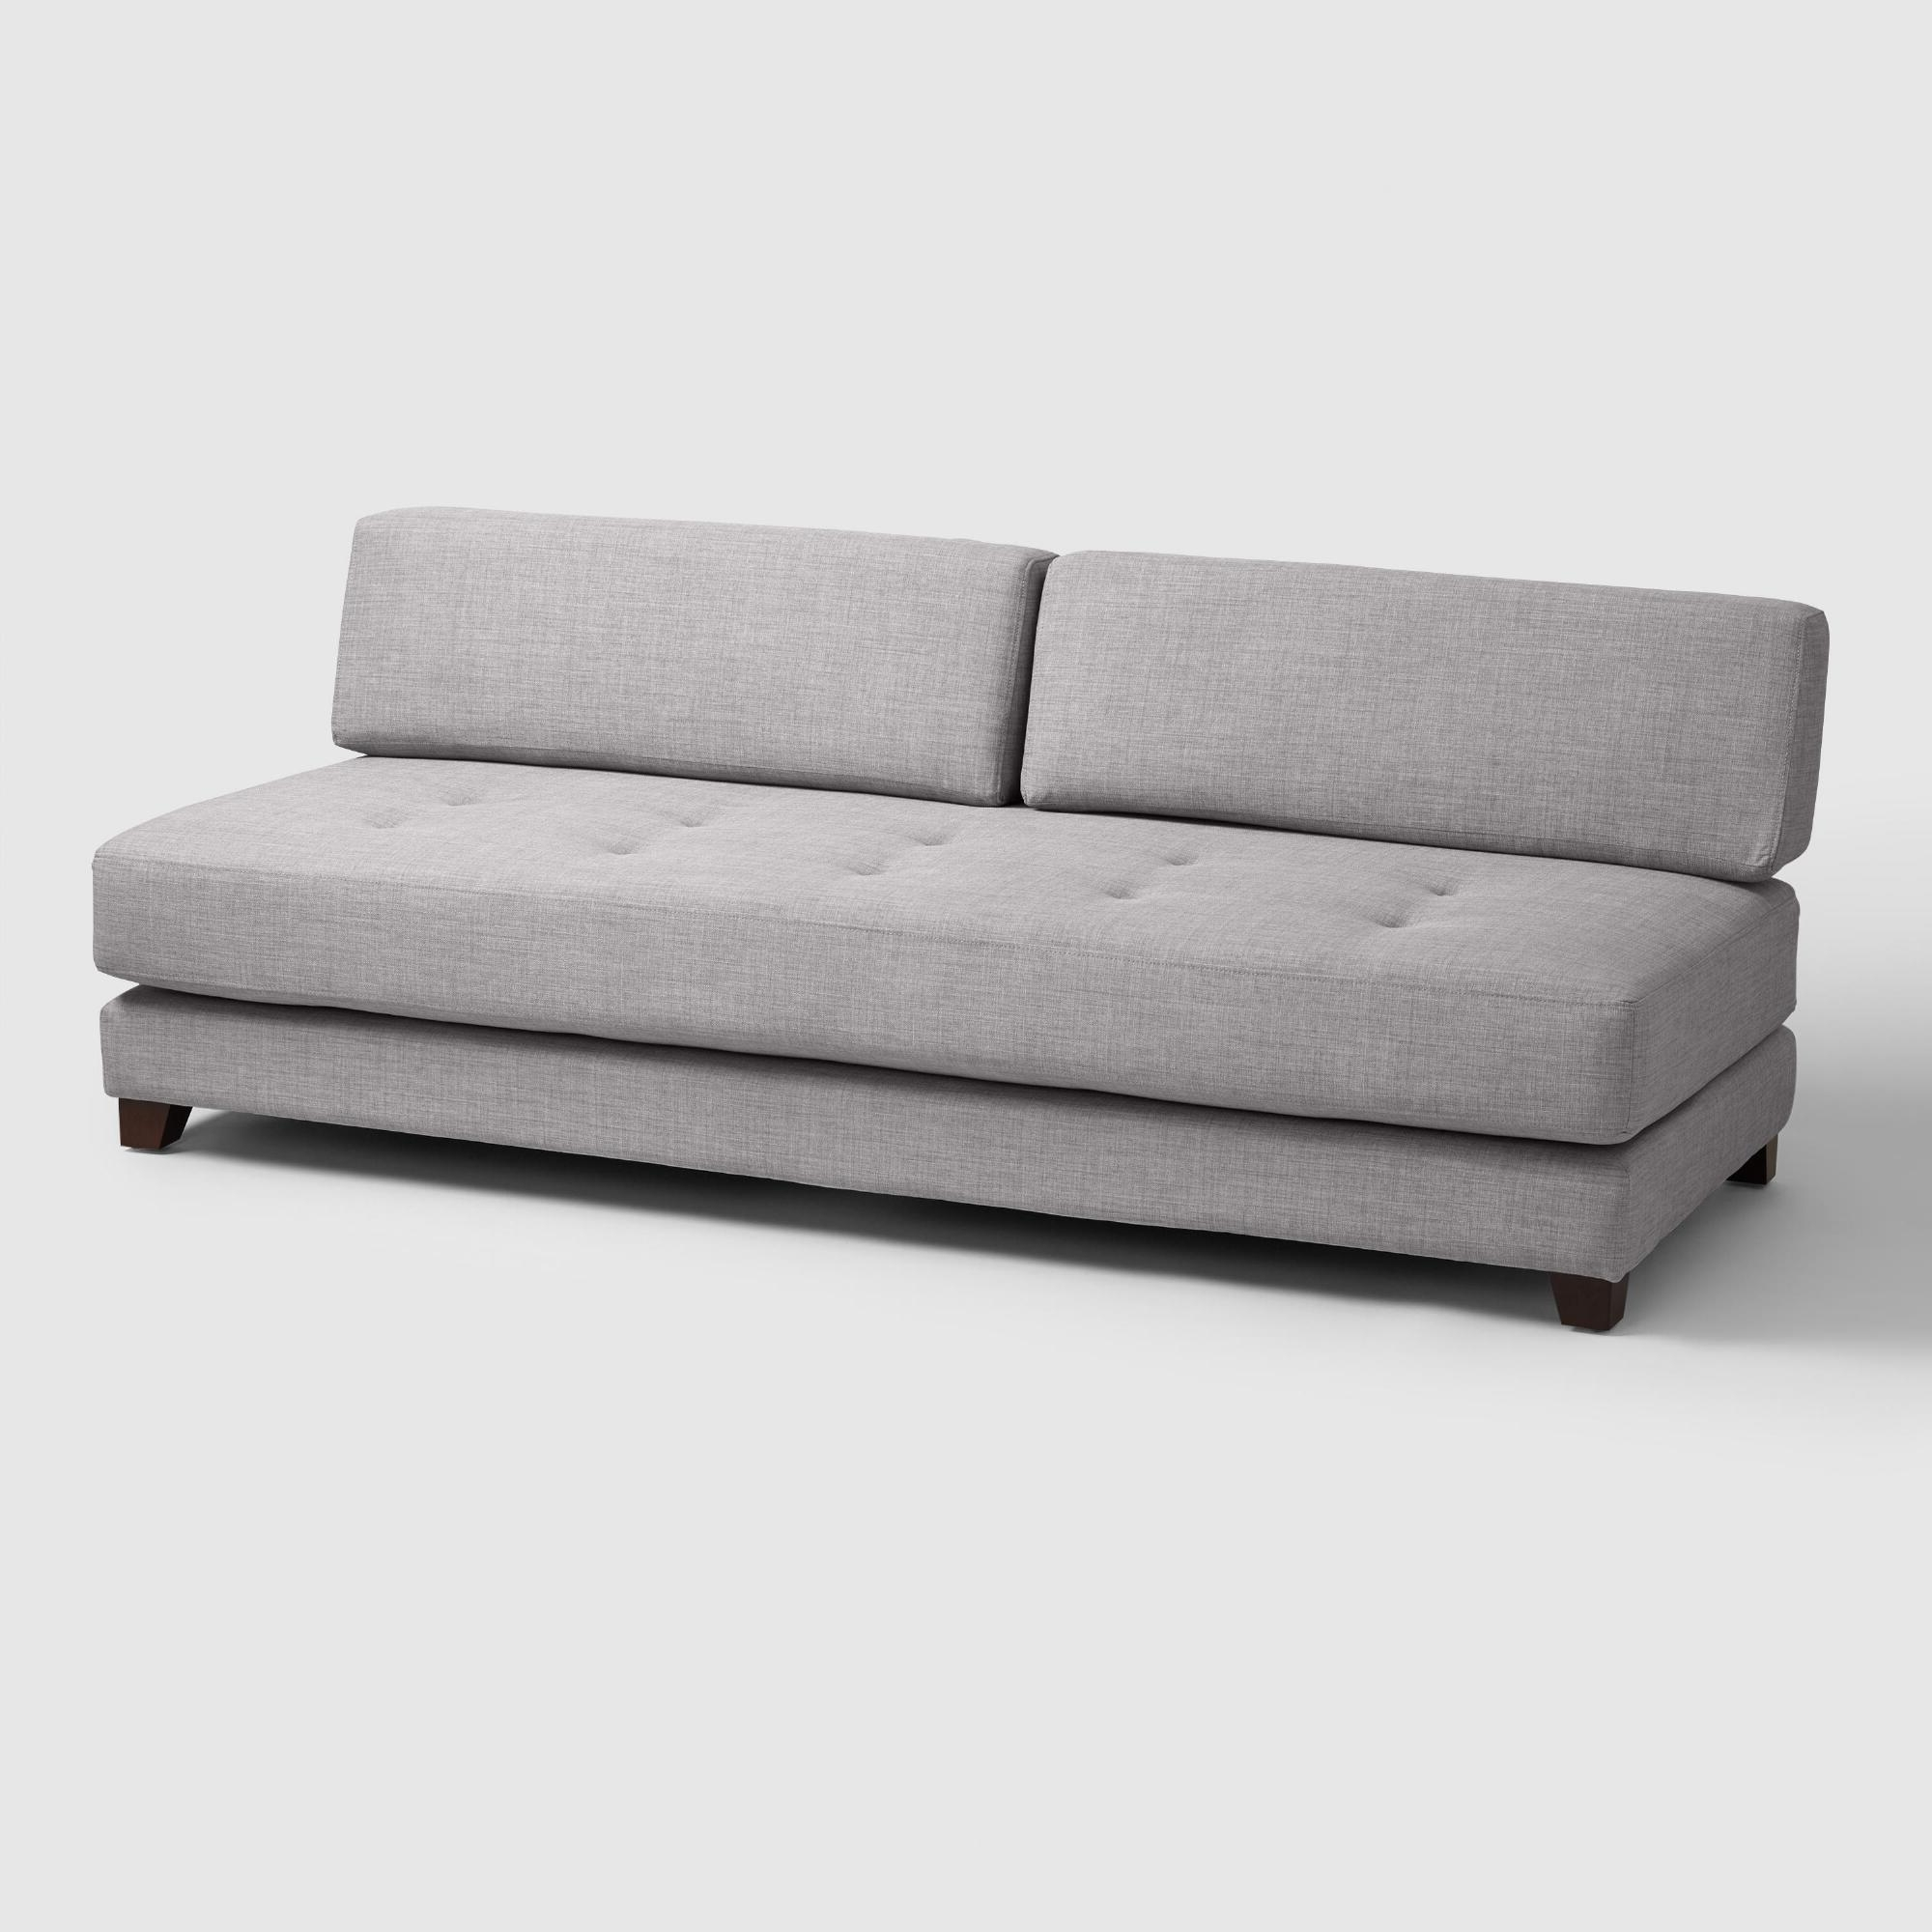 Daybed Chaises Within Recent Chaise Lounge Daybed Best 25 Longue Ideas On Pinterest (View 7 of 15)